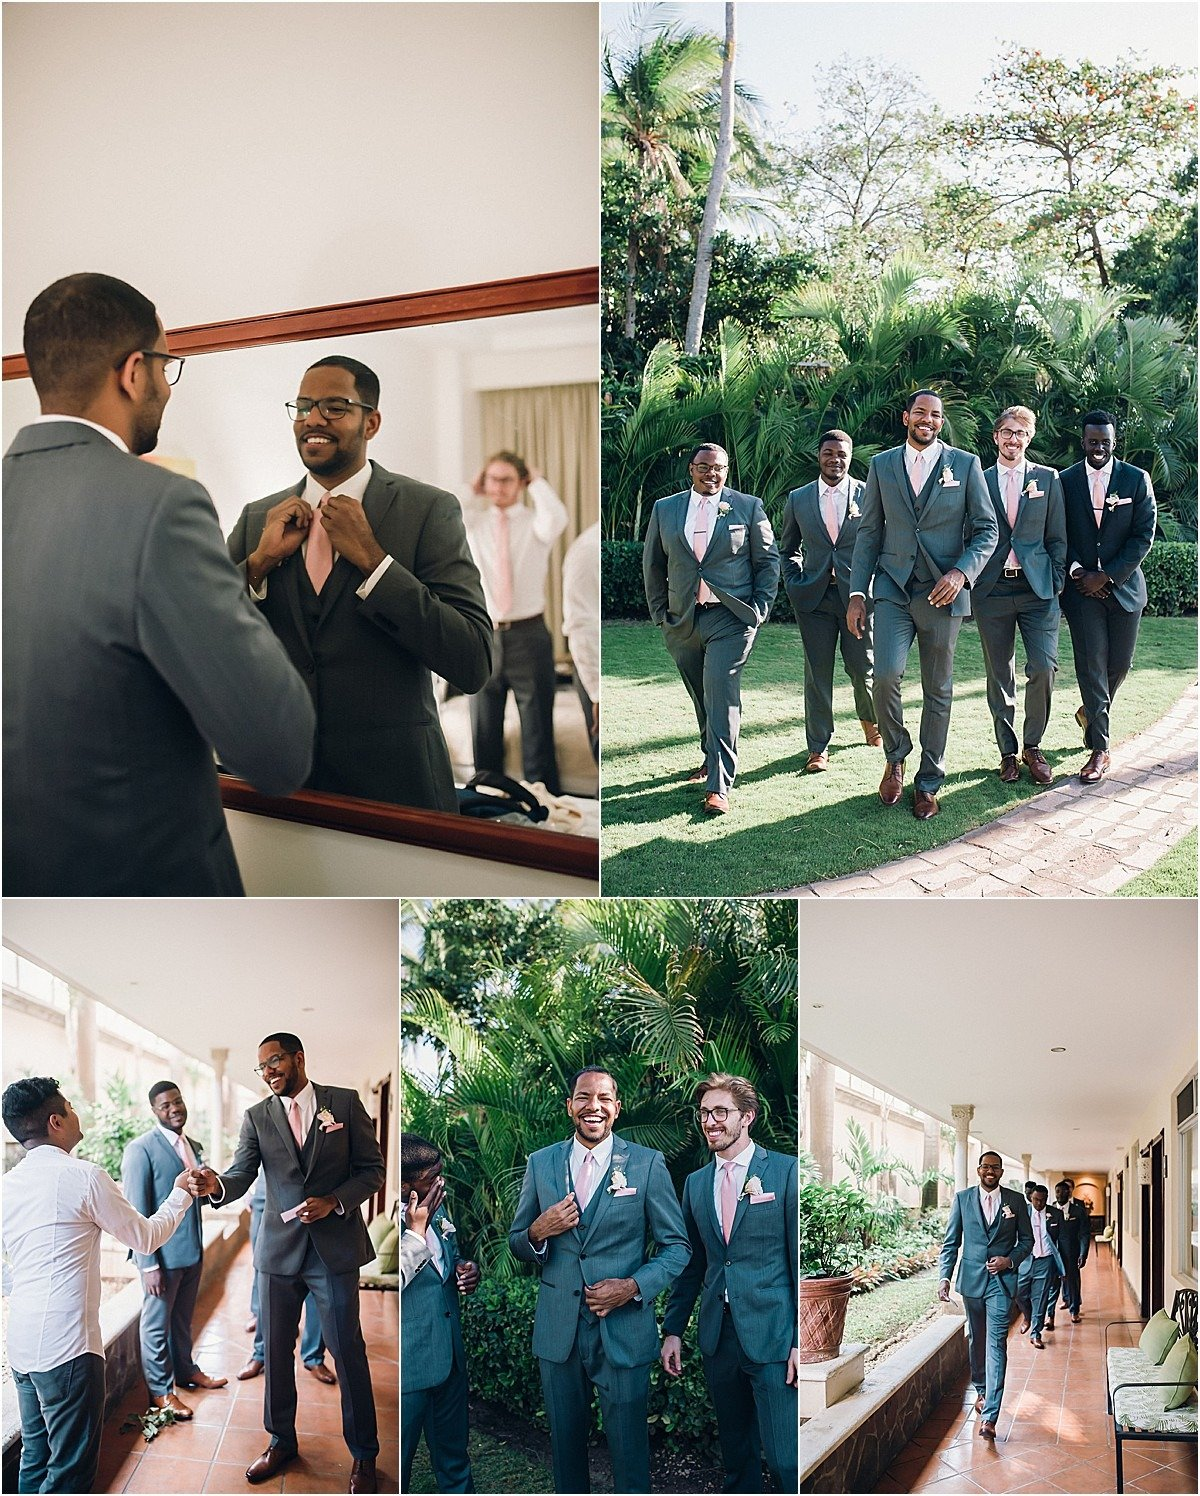 groomsmen all in grey